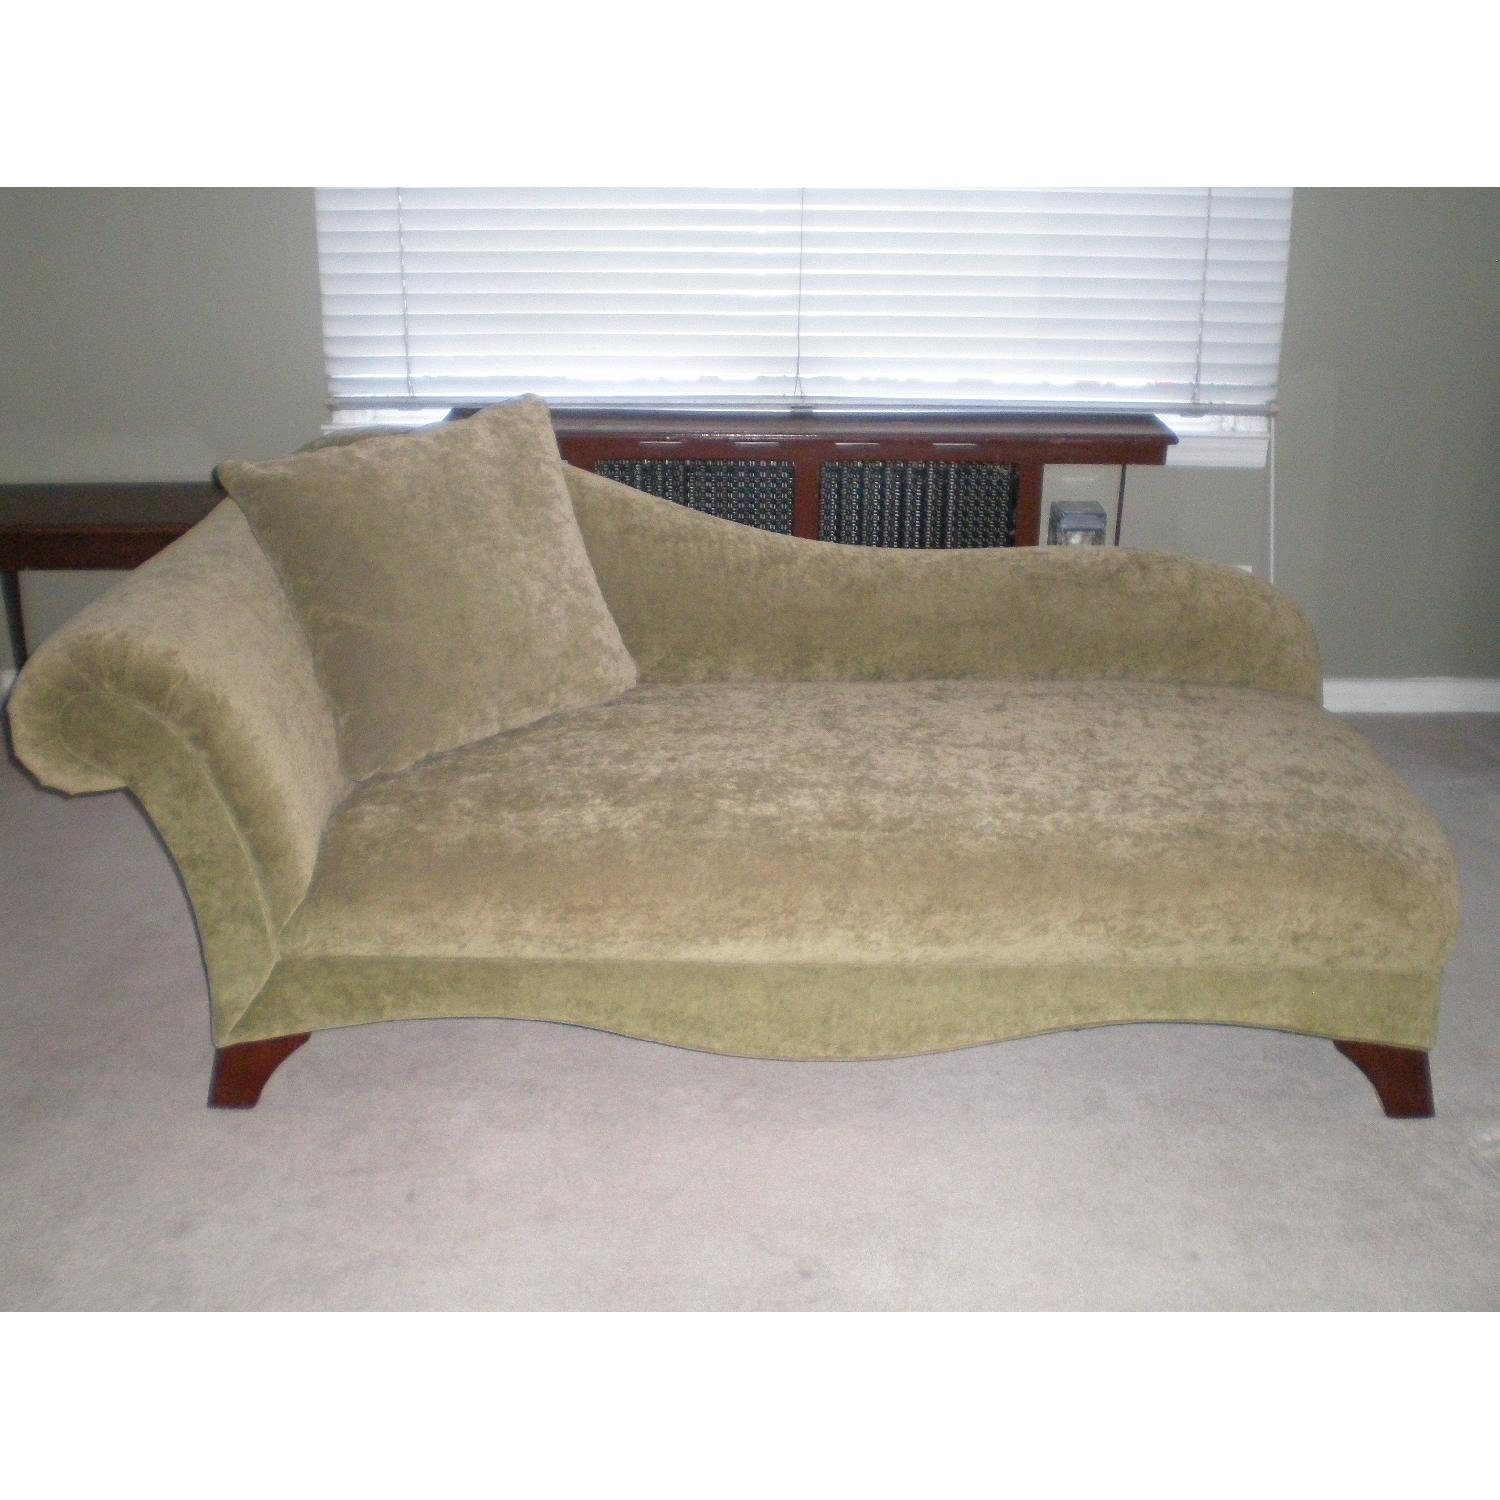 Chaise Lounge with Matching Pillow - image-1